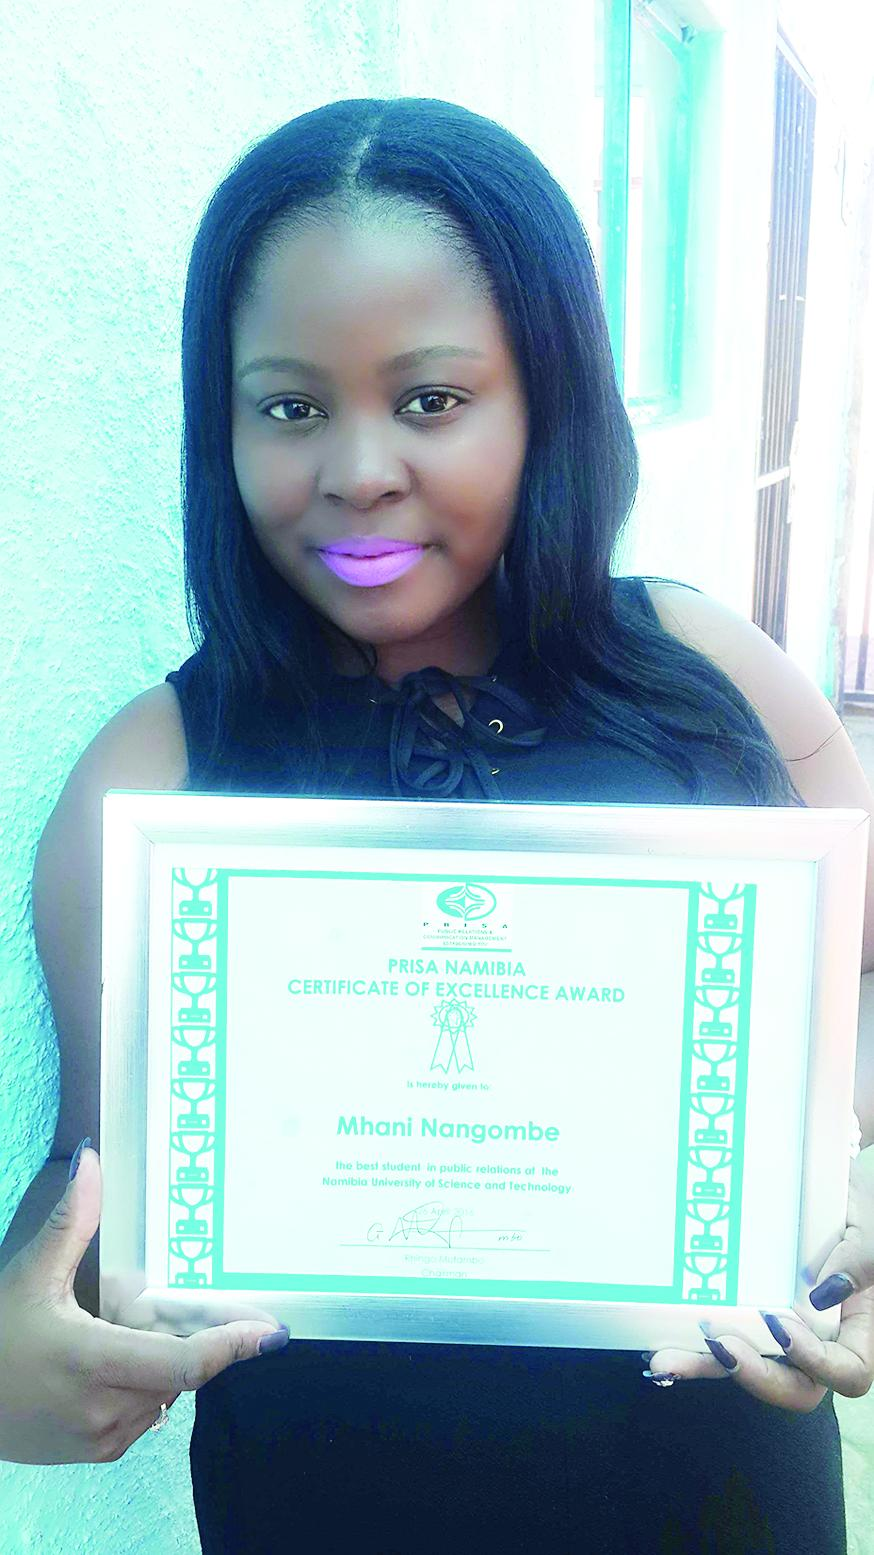 NUST student receives Certificate of Excellence